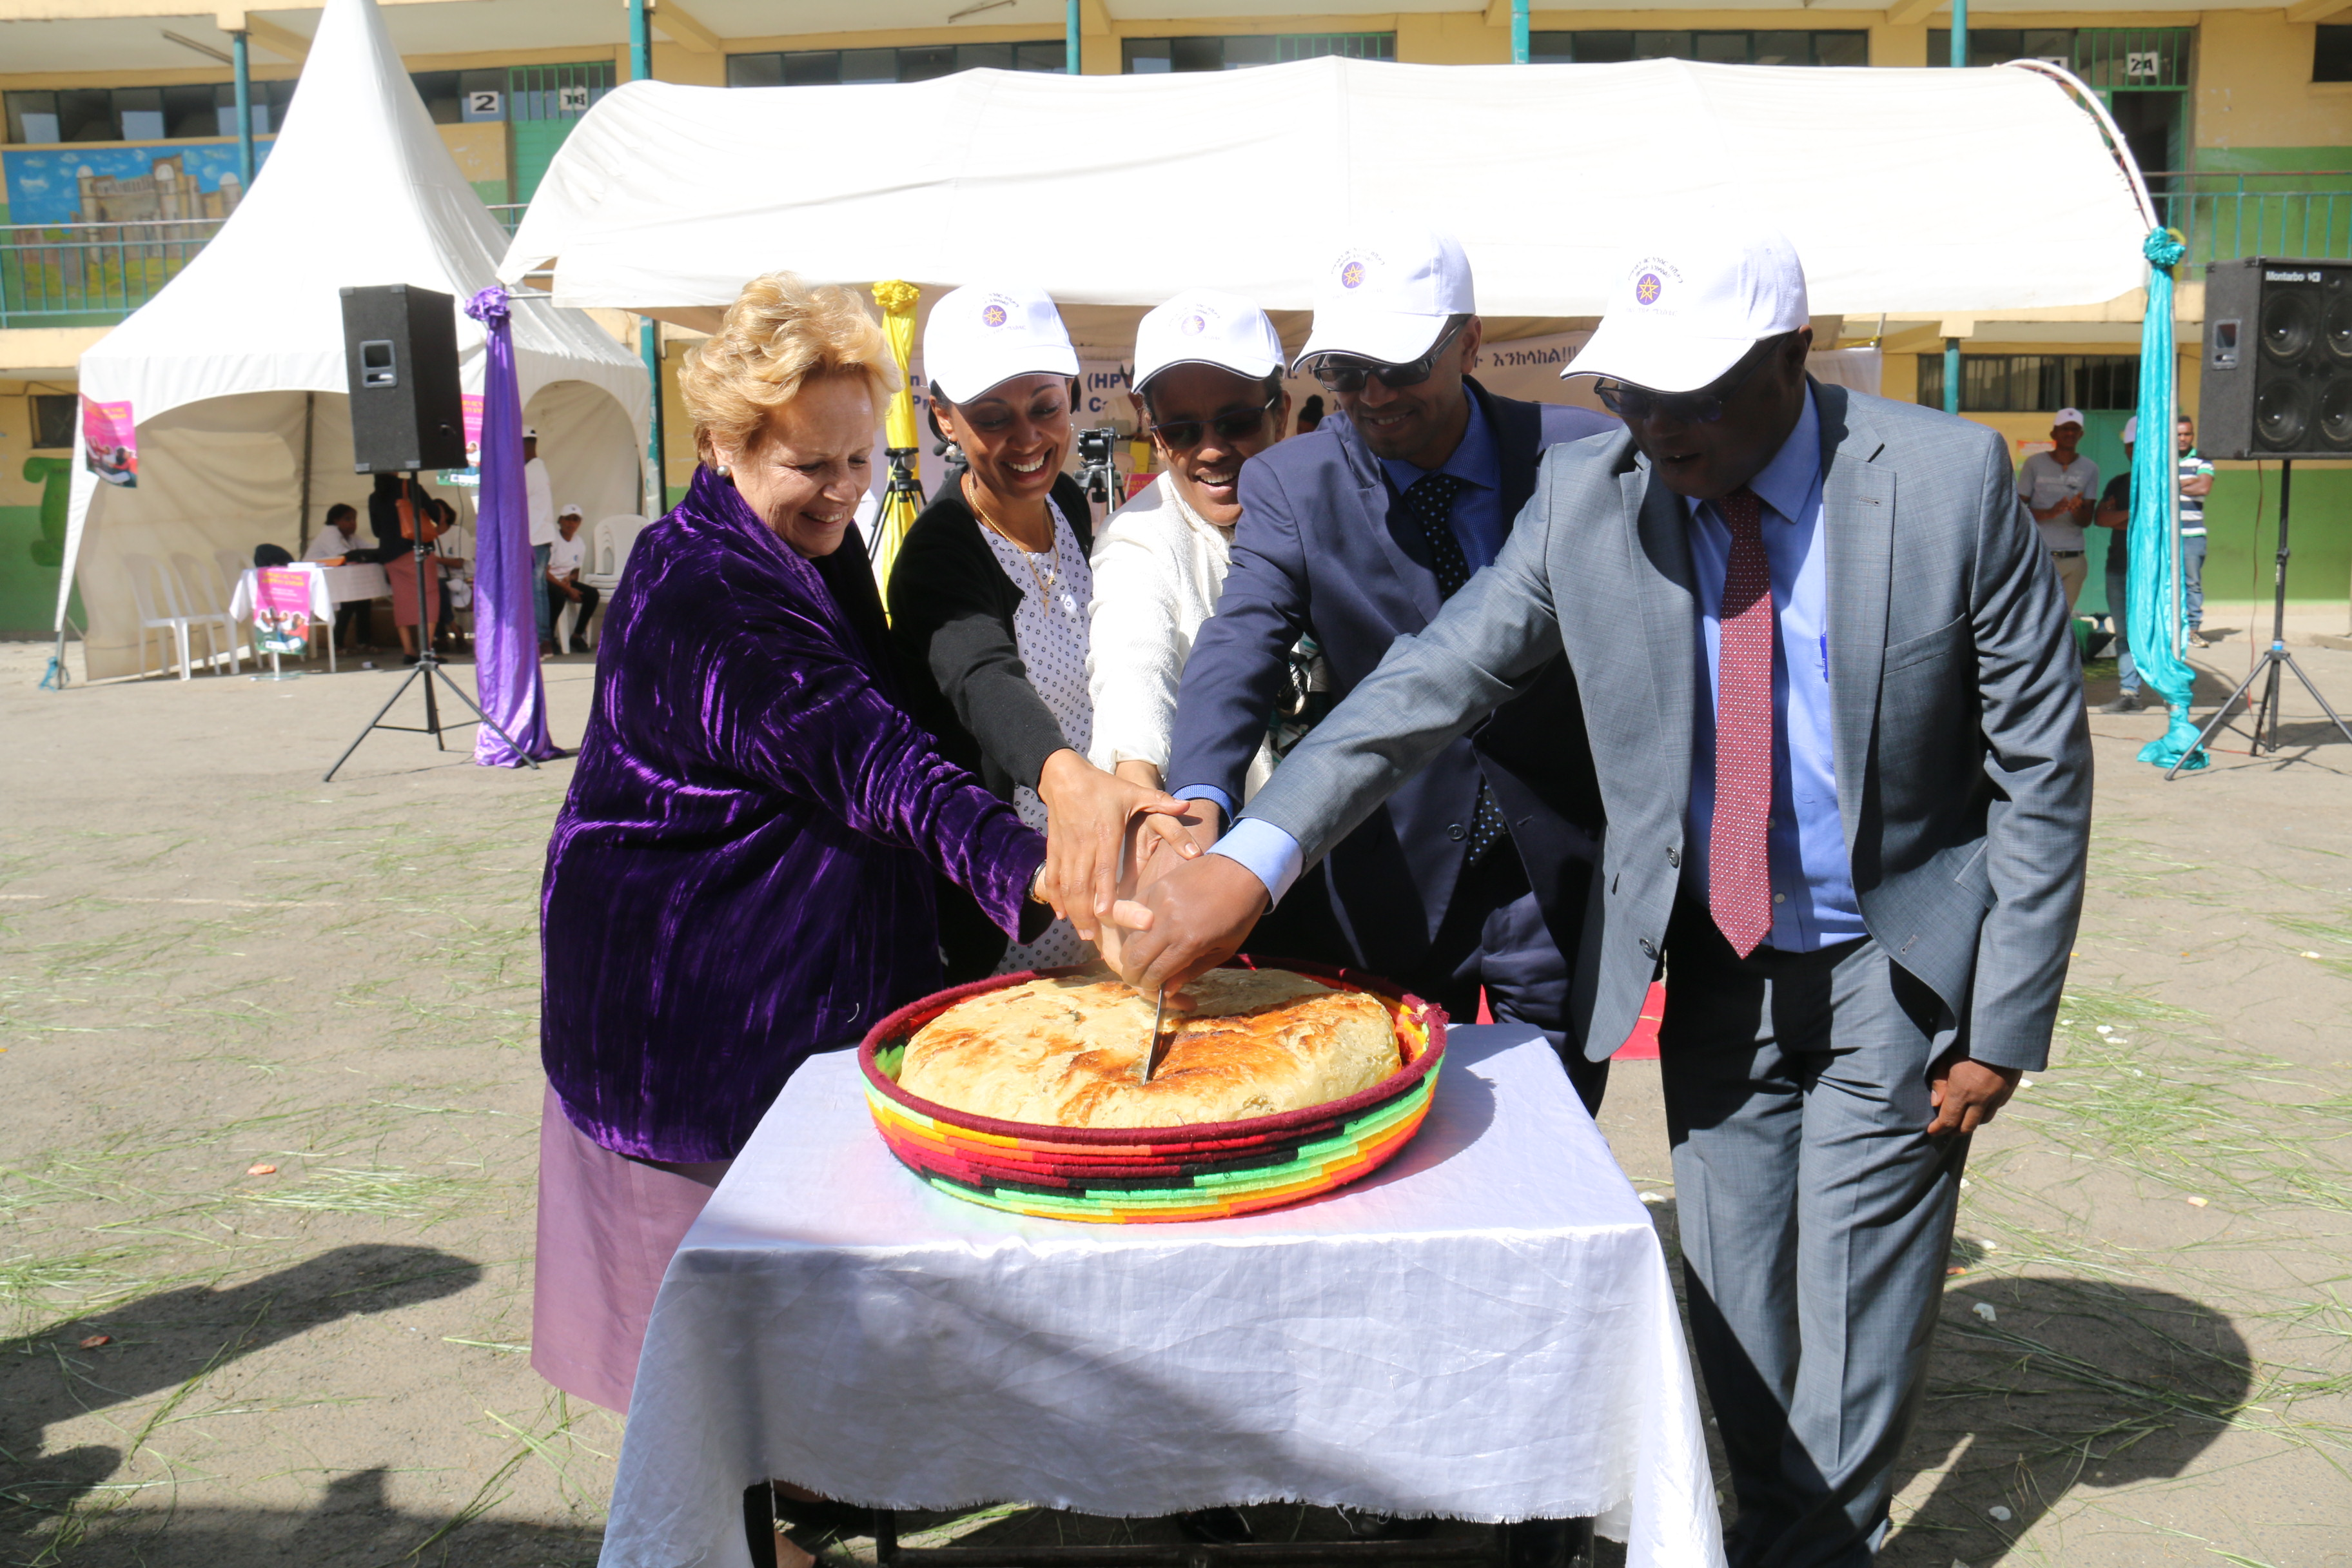 R to L: Paul Mainuka, WHO Representative a.i., H.E. Dr Amir Aman, Minister to MoH, Mrs Roman Tesfaye, Former First Lady, Dr Liya Tadesse, State Minister of MoH, Ms Gillian Mellsop, cutting the bread during the HPV launch